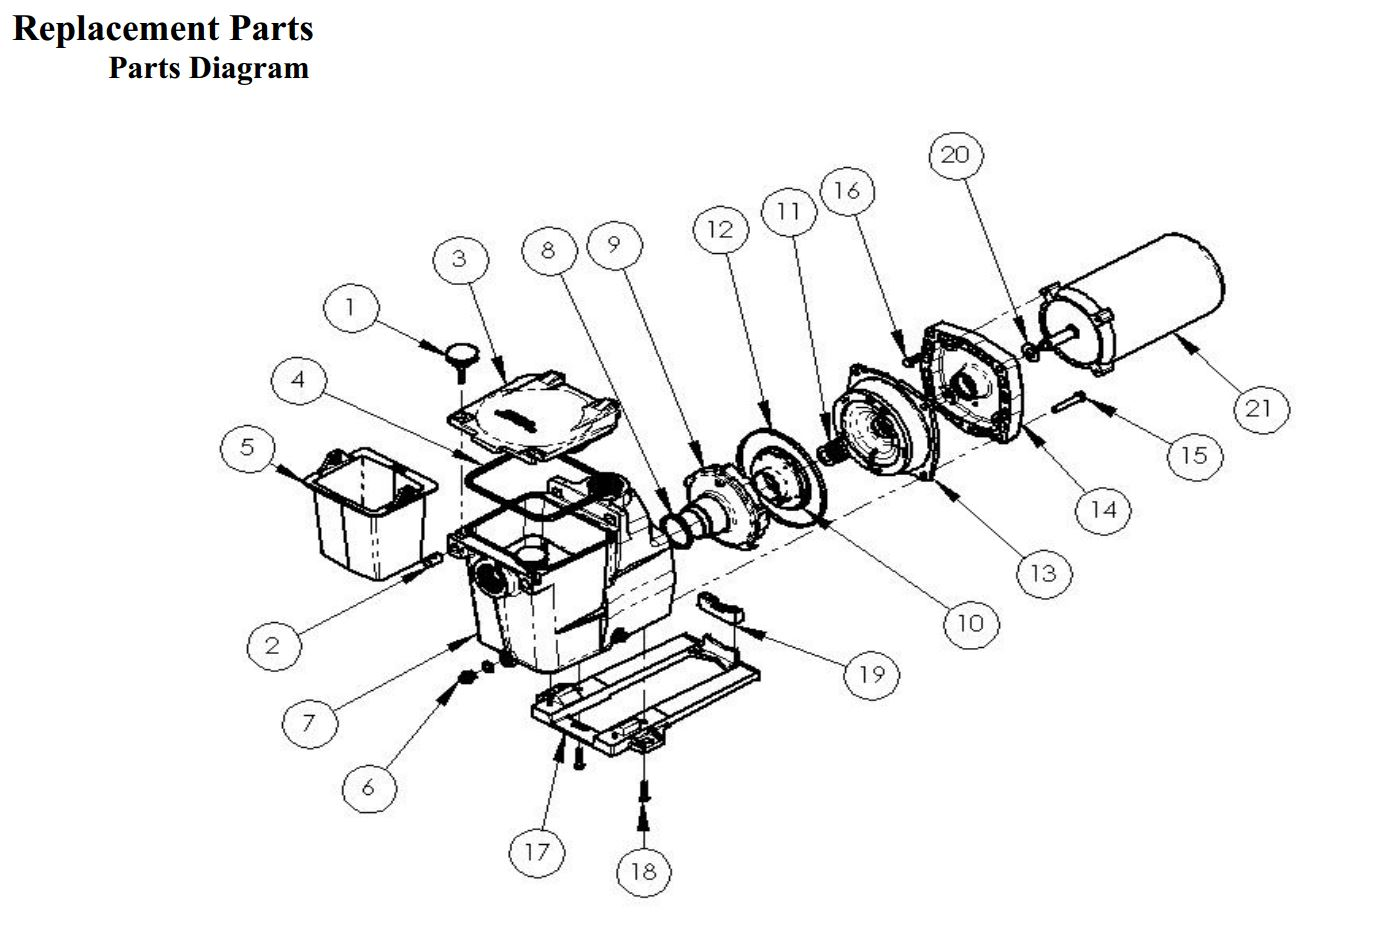 Hayward Sp2610x15 Super Pump 15 Hp Pool 220 Volt Wiring Diagram Further 240 Motor Replacement Parts